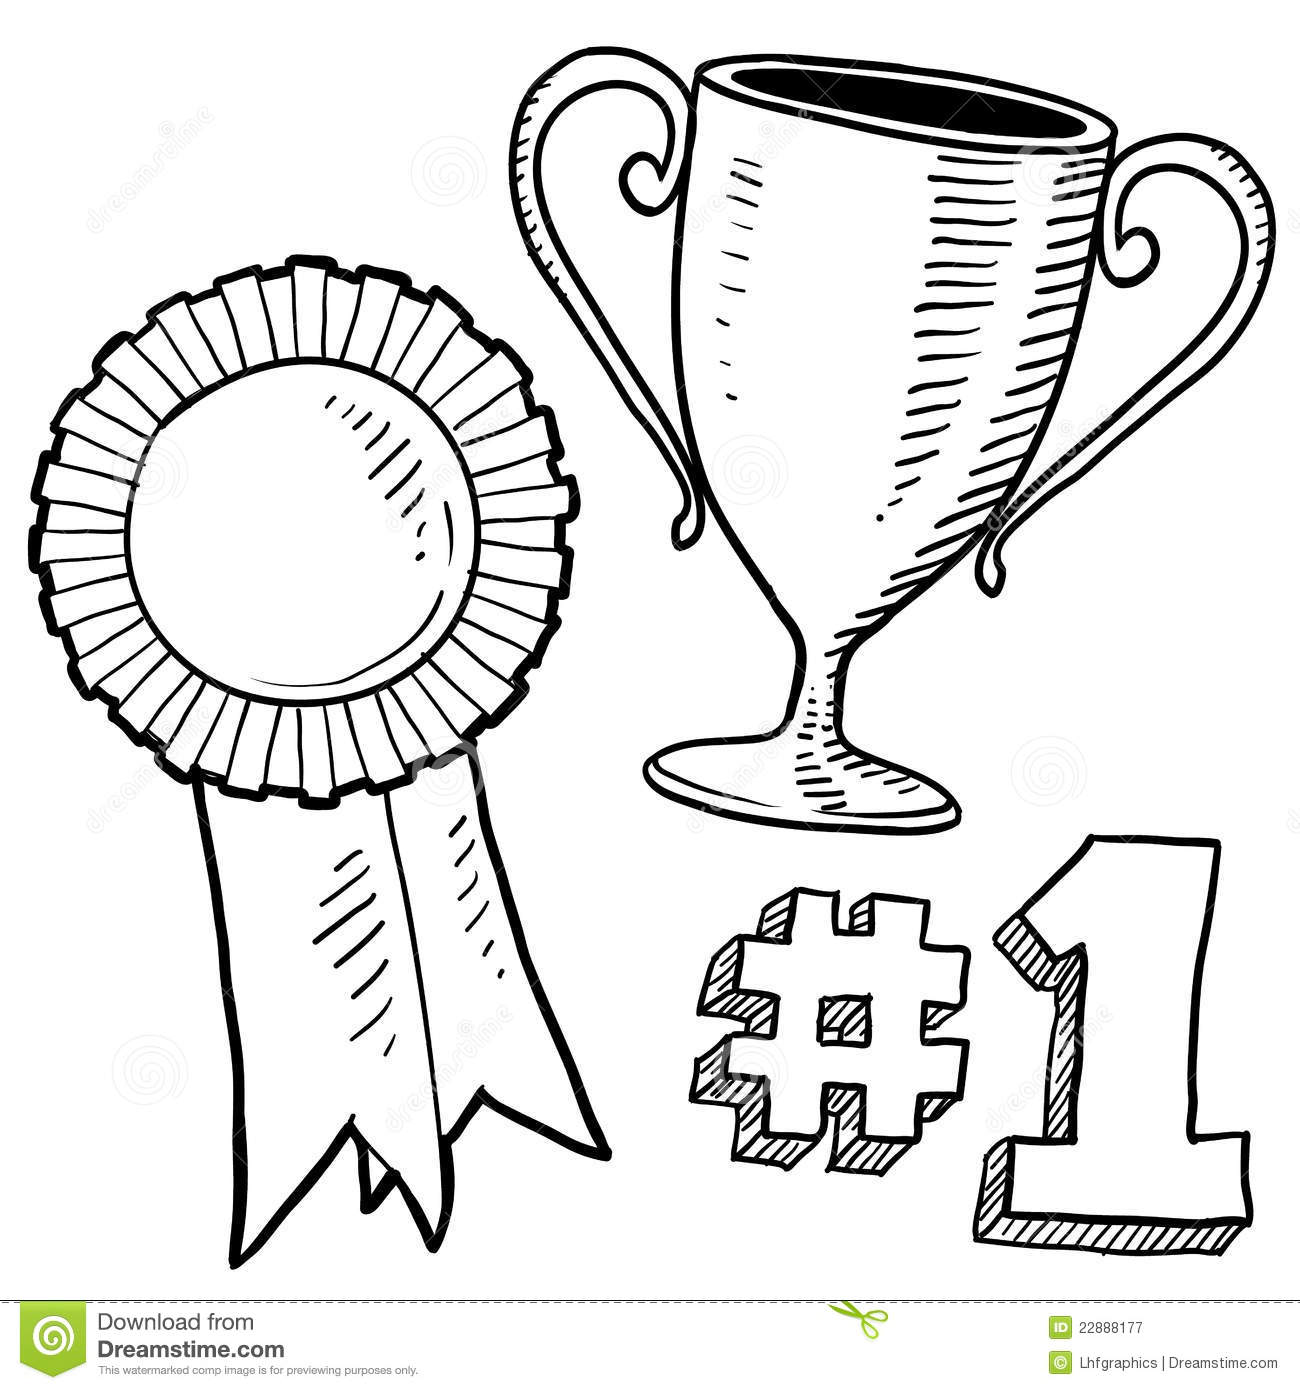 Winner Or Awards Sketch Royalty Free Stock Photography